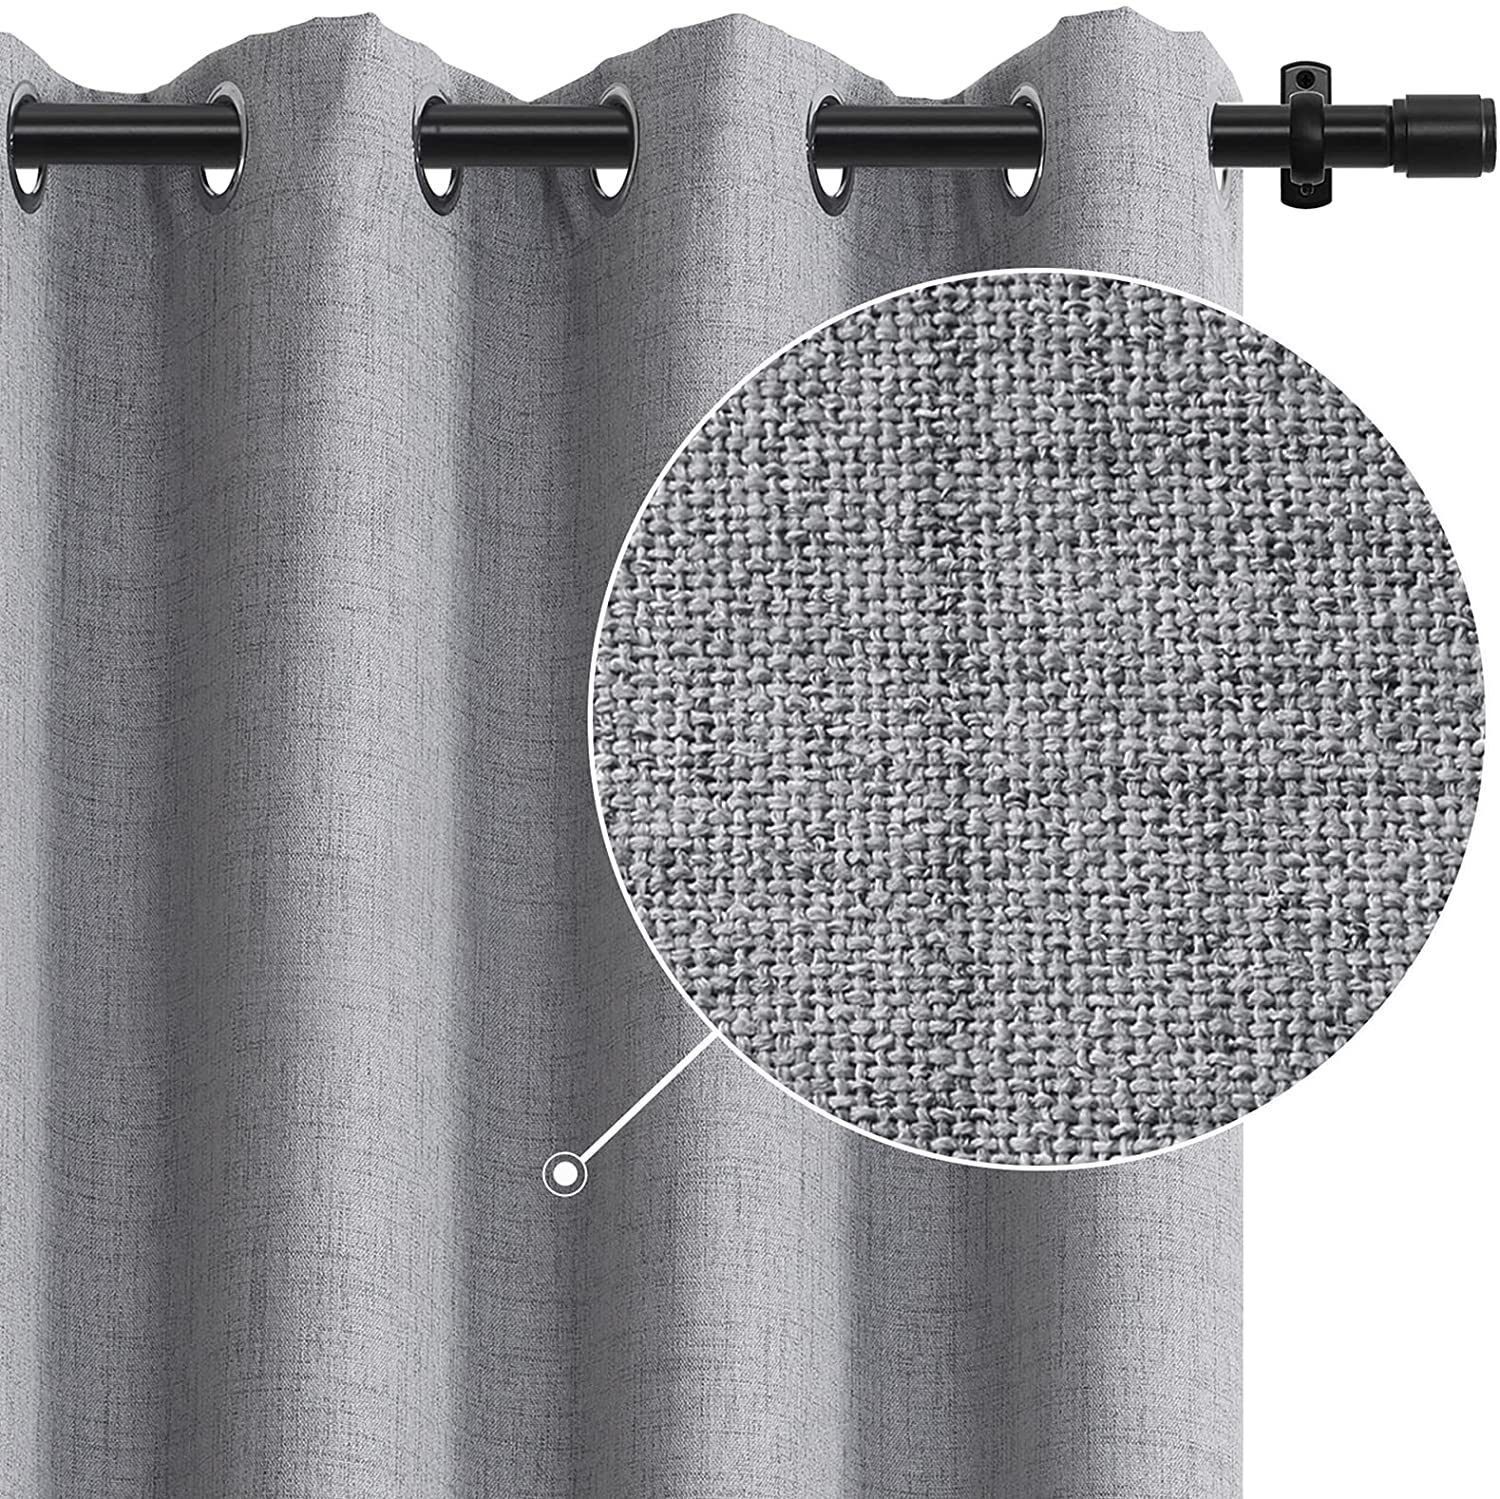 Rose Home Fashion 100% Blackout Curtains for Bedroom Linen Textured Look Drapes with Blackout Liner, Curtains for Living Room/Farmhouse, Burlap Curtains-Set of 2 Panels (50x63 Grey) Grey W50 x L63